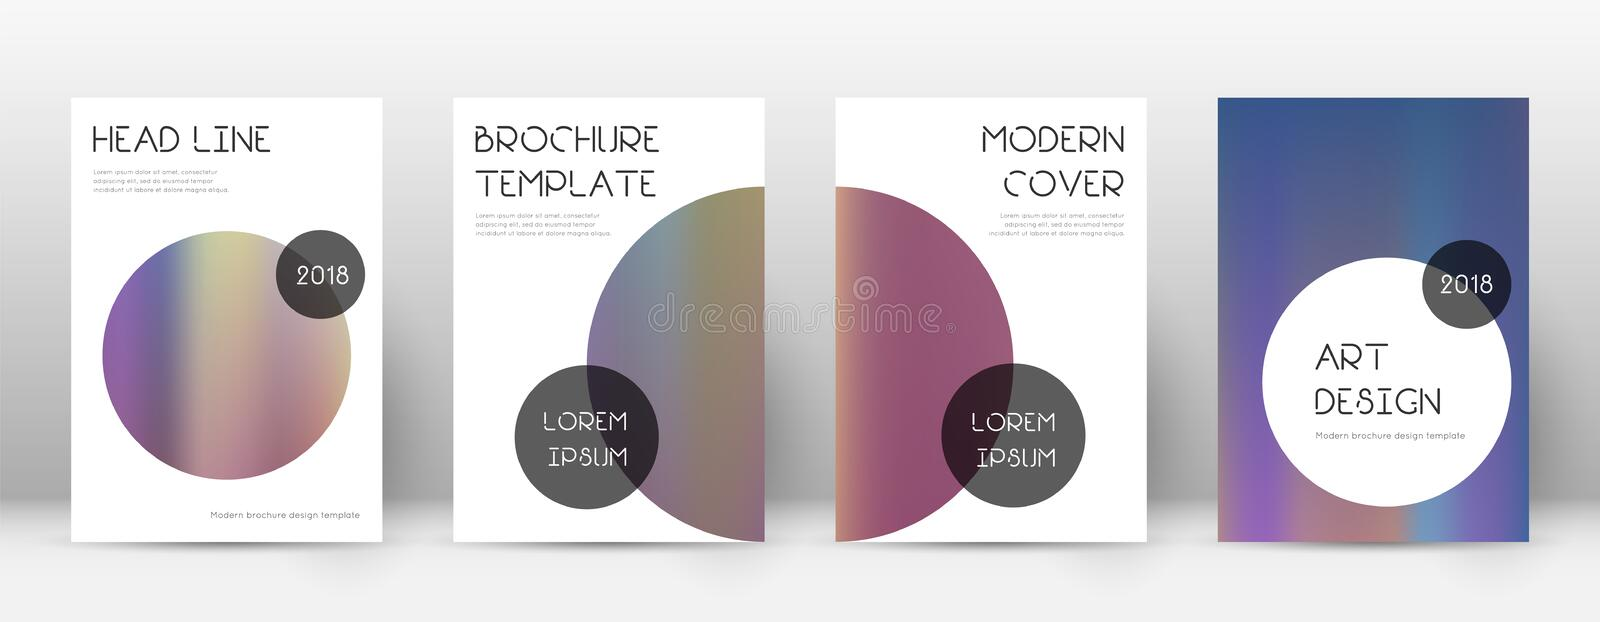 Flyer layout. Trendy ecstatic template for Brochure, Annual Report, Magazine, Poster, Corporate Presentation, Portfolio, Flyer. Beauteous bright hologram cover stock illustration